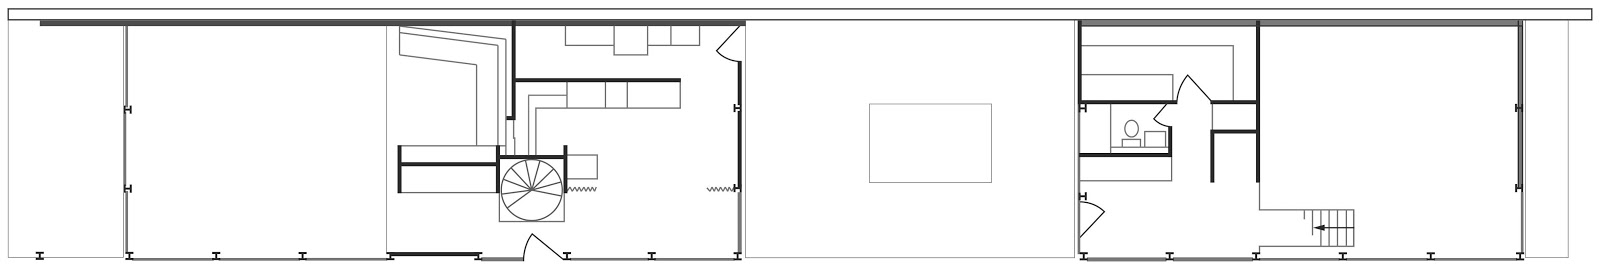 House Floor Plan With Dimensions house plans with dimensions. great bathroom floor plan and